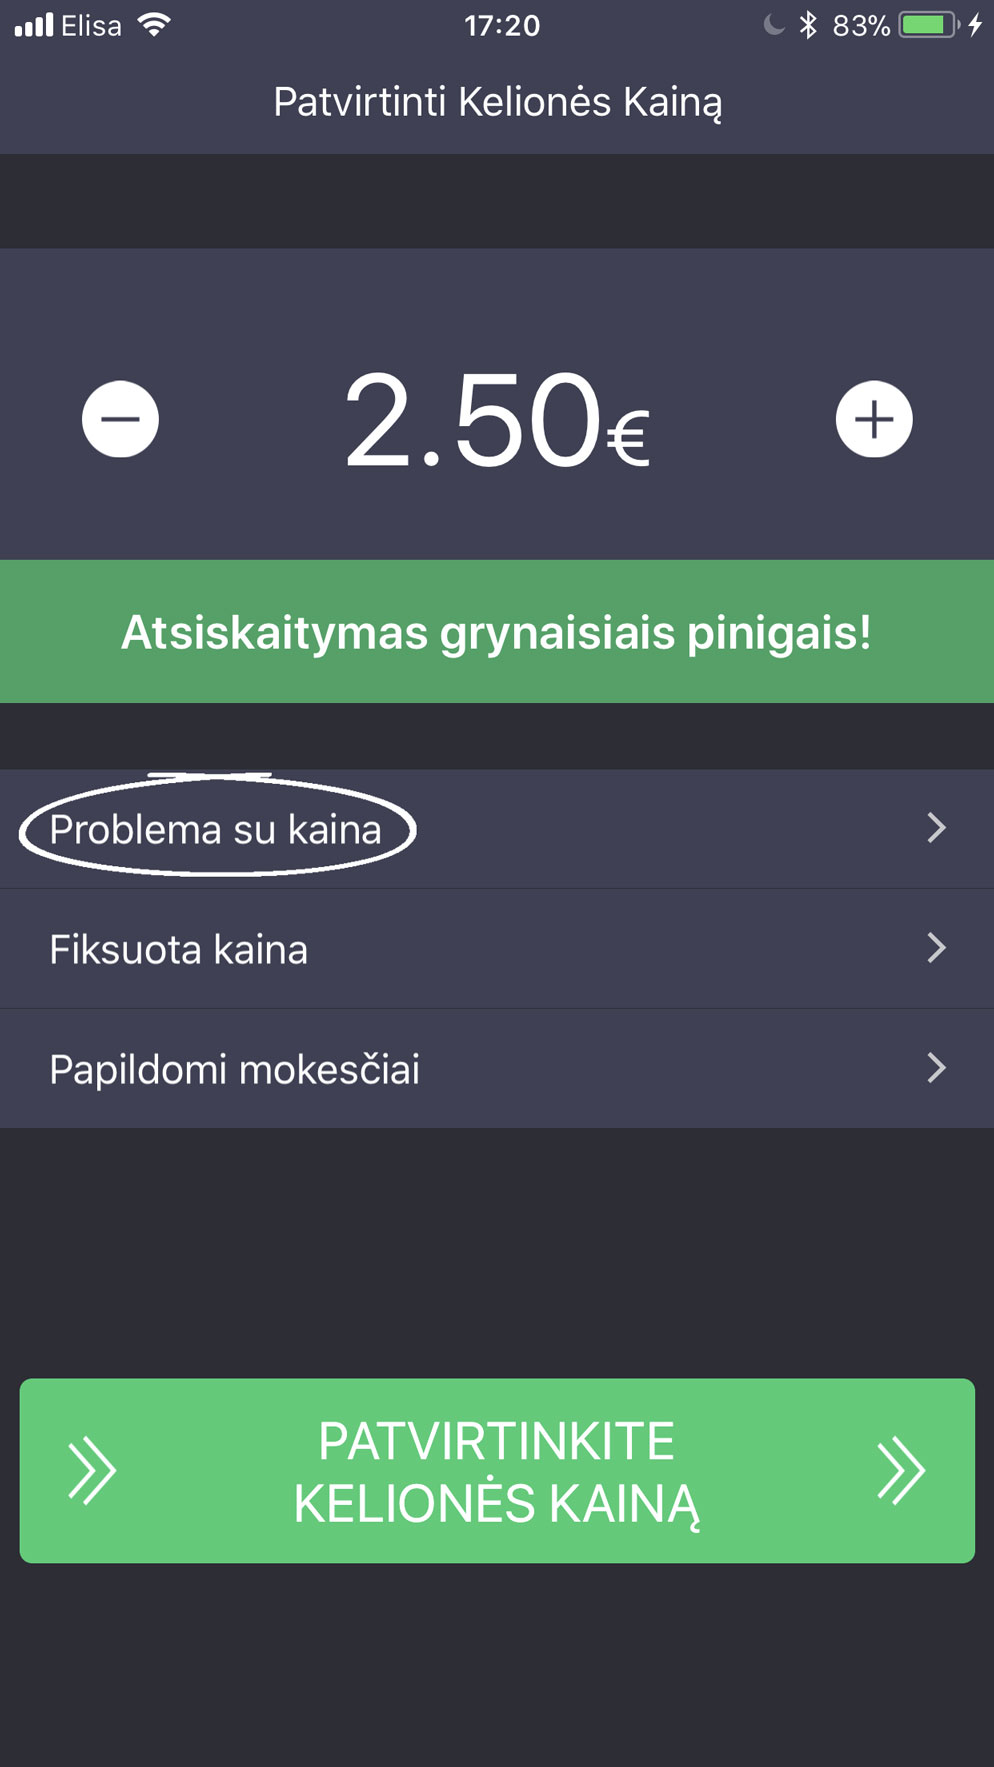 LITHUAN-problem-with-price.jpg